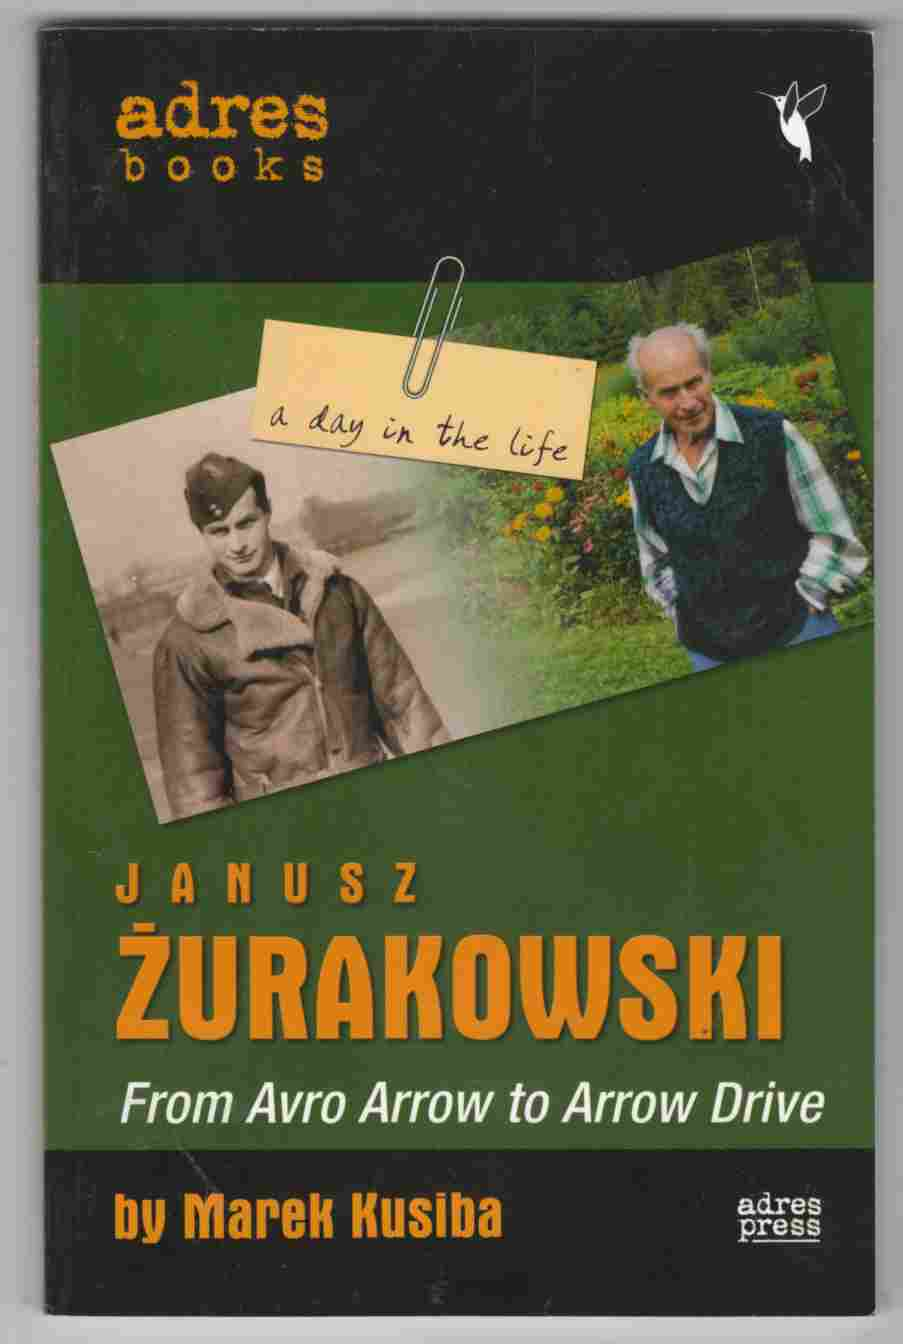 Image for Janusz Zurakowski From Avro Arrow to Arrow Drive